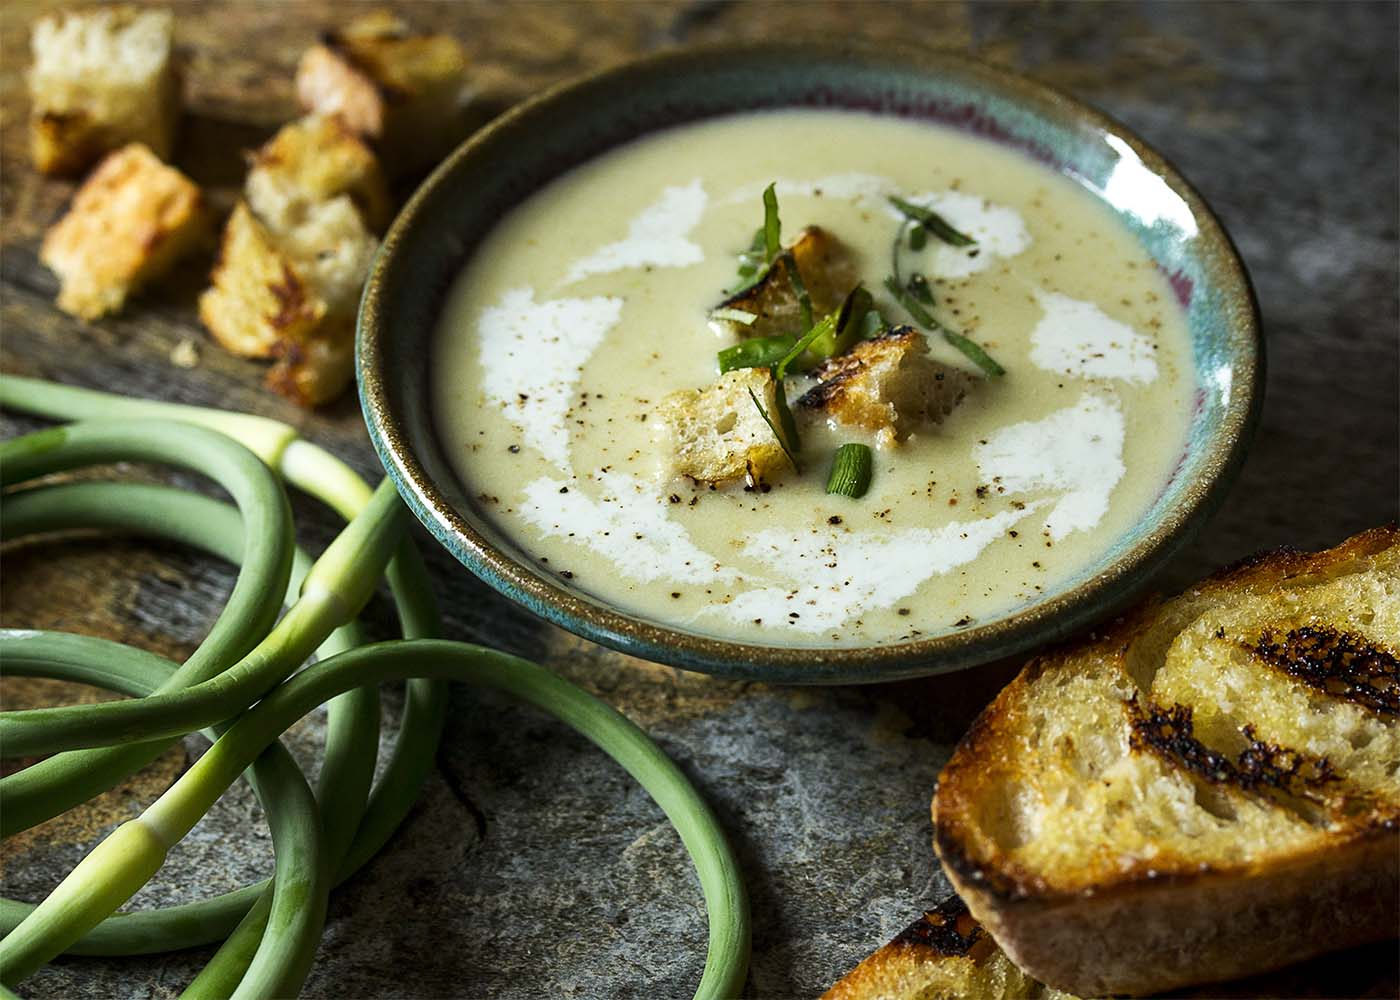 A bowl of cold garlic scape soup topped with garnishes. Grilled bread and garlic scapes scattered about.